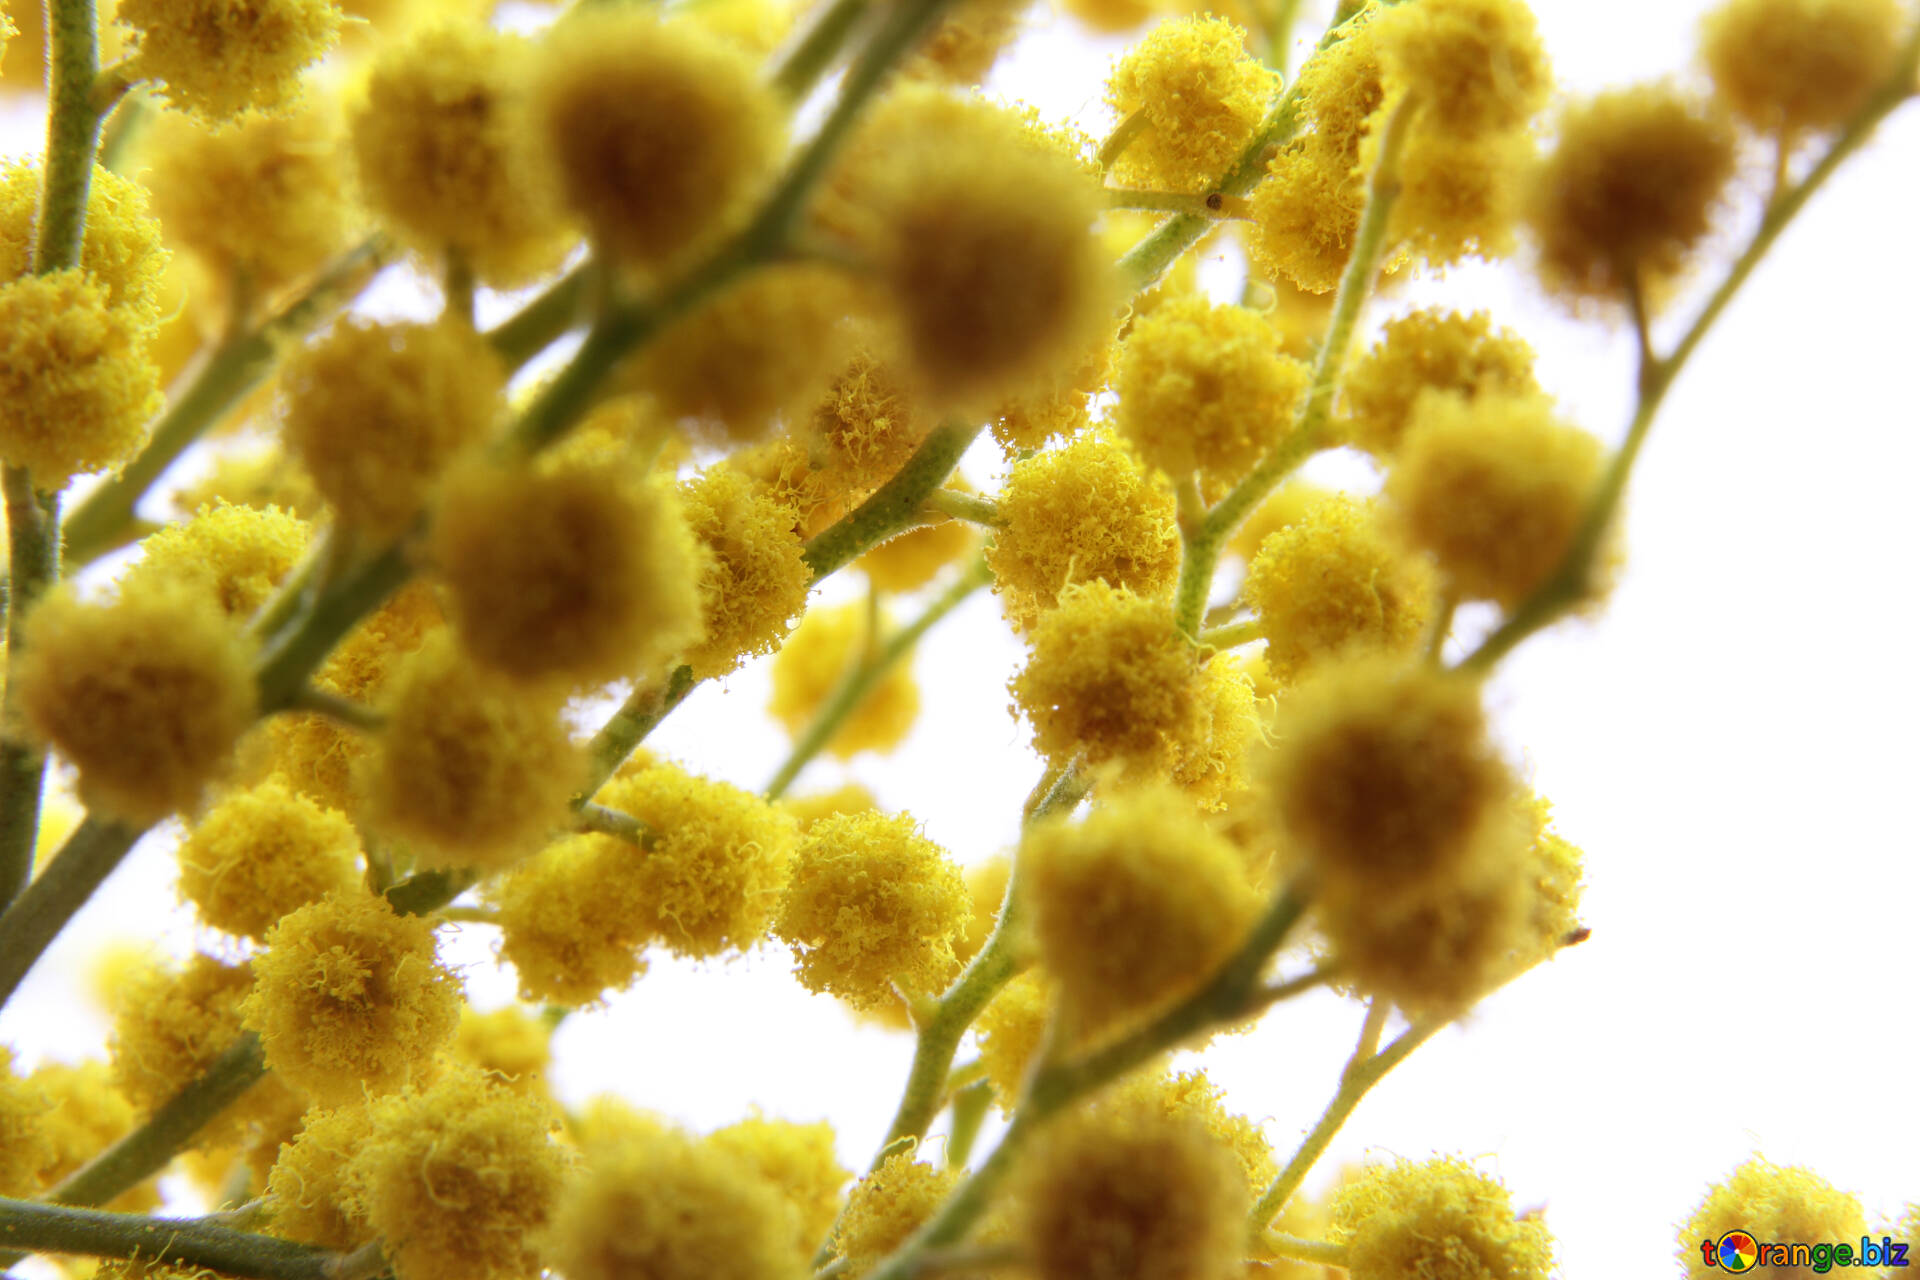 Flowers mimosa yellow flower balls spring 20483 download free image yellow flower balls in hd wallpaper size 1920px mightylinksfo